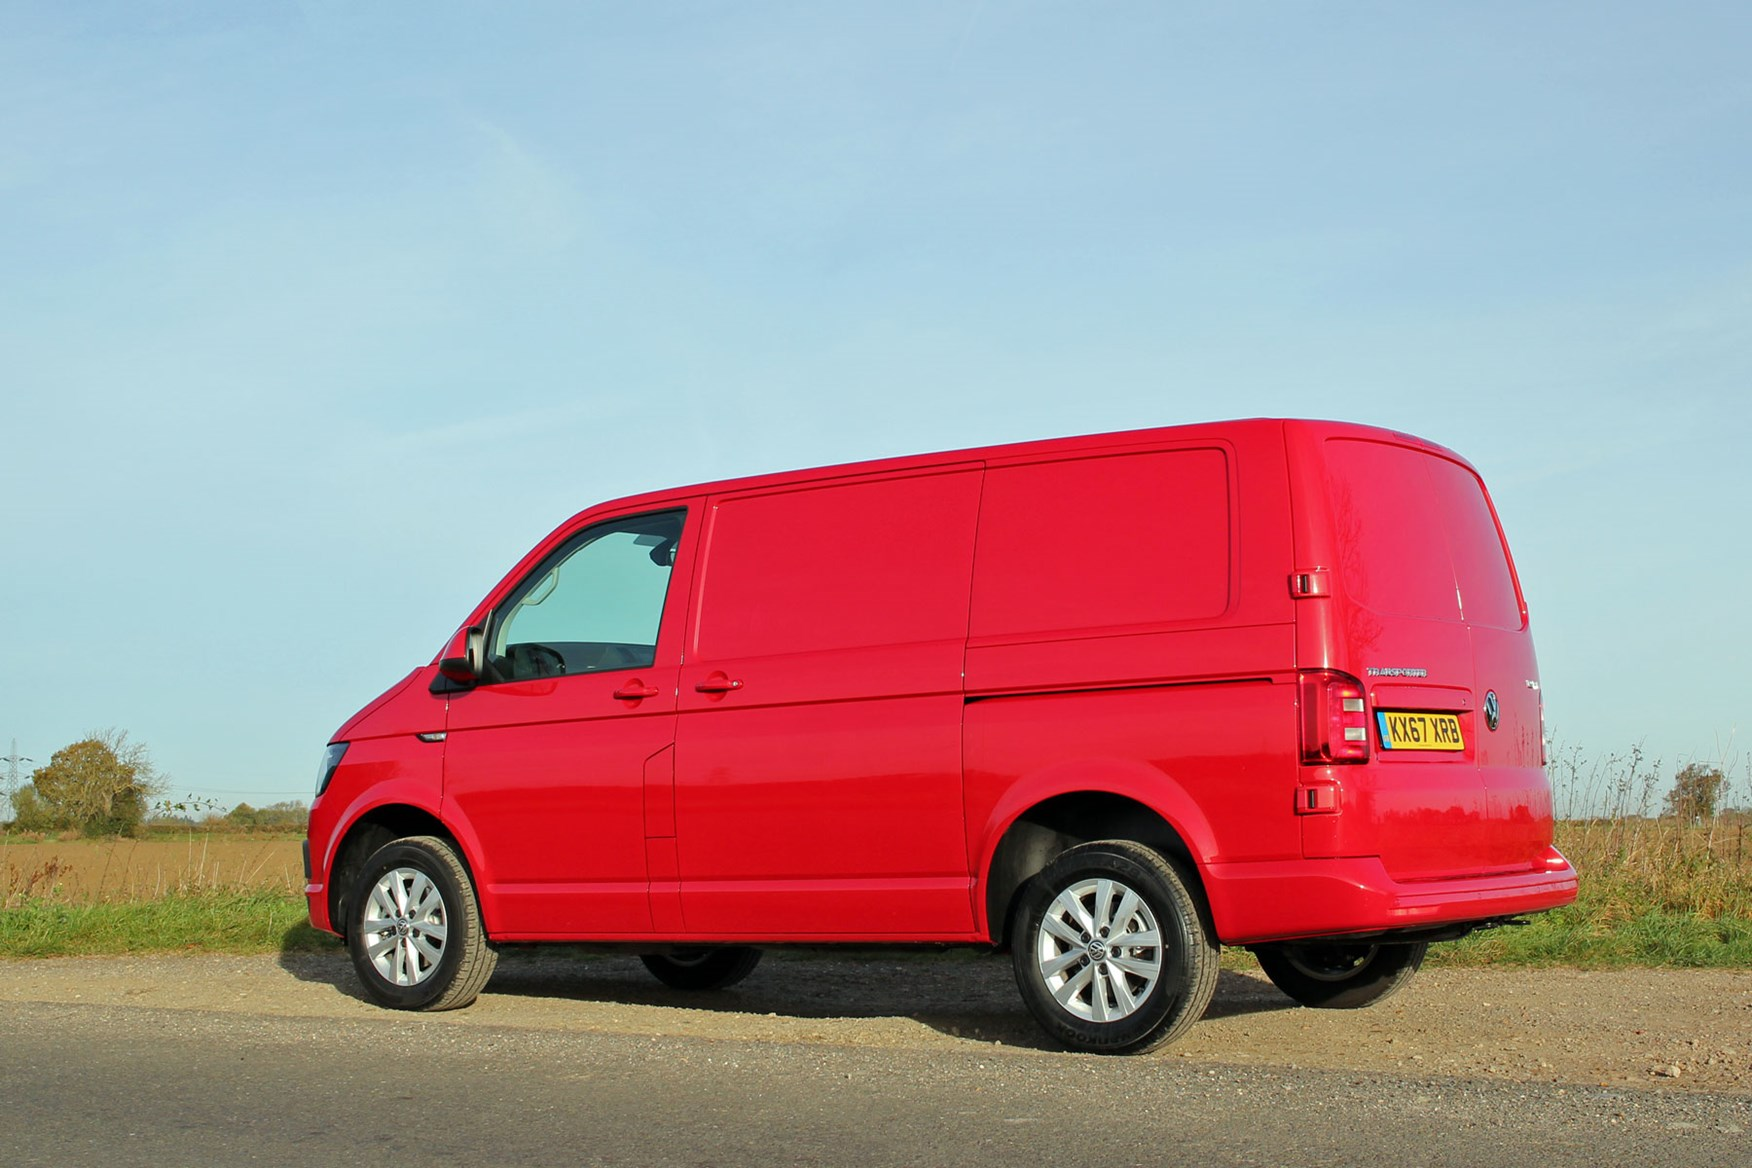 VW Transporter T6 TSI 150 review - rear view, red